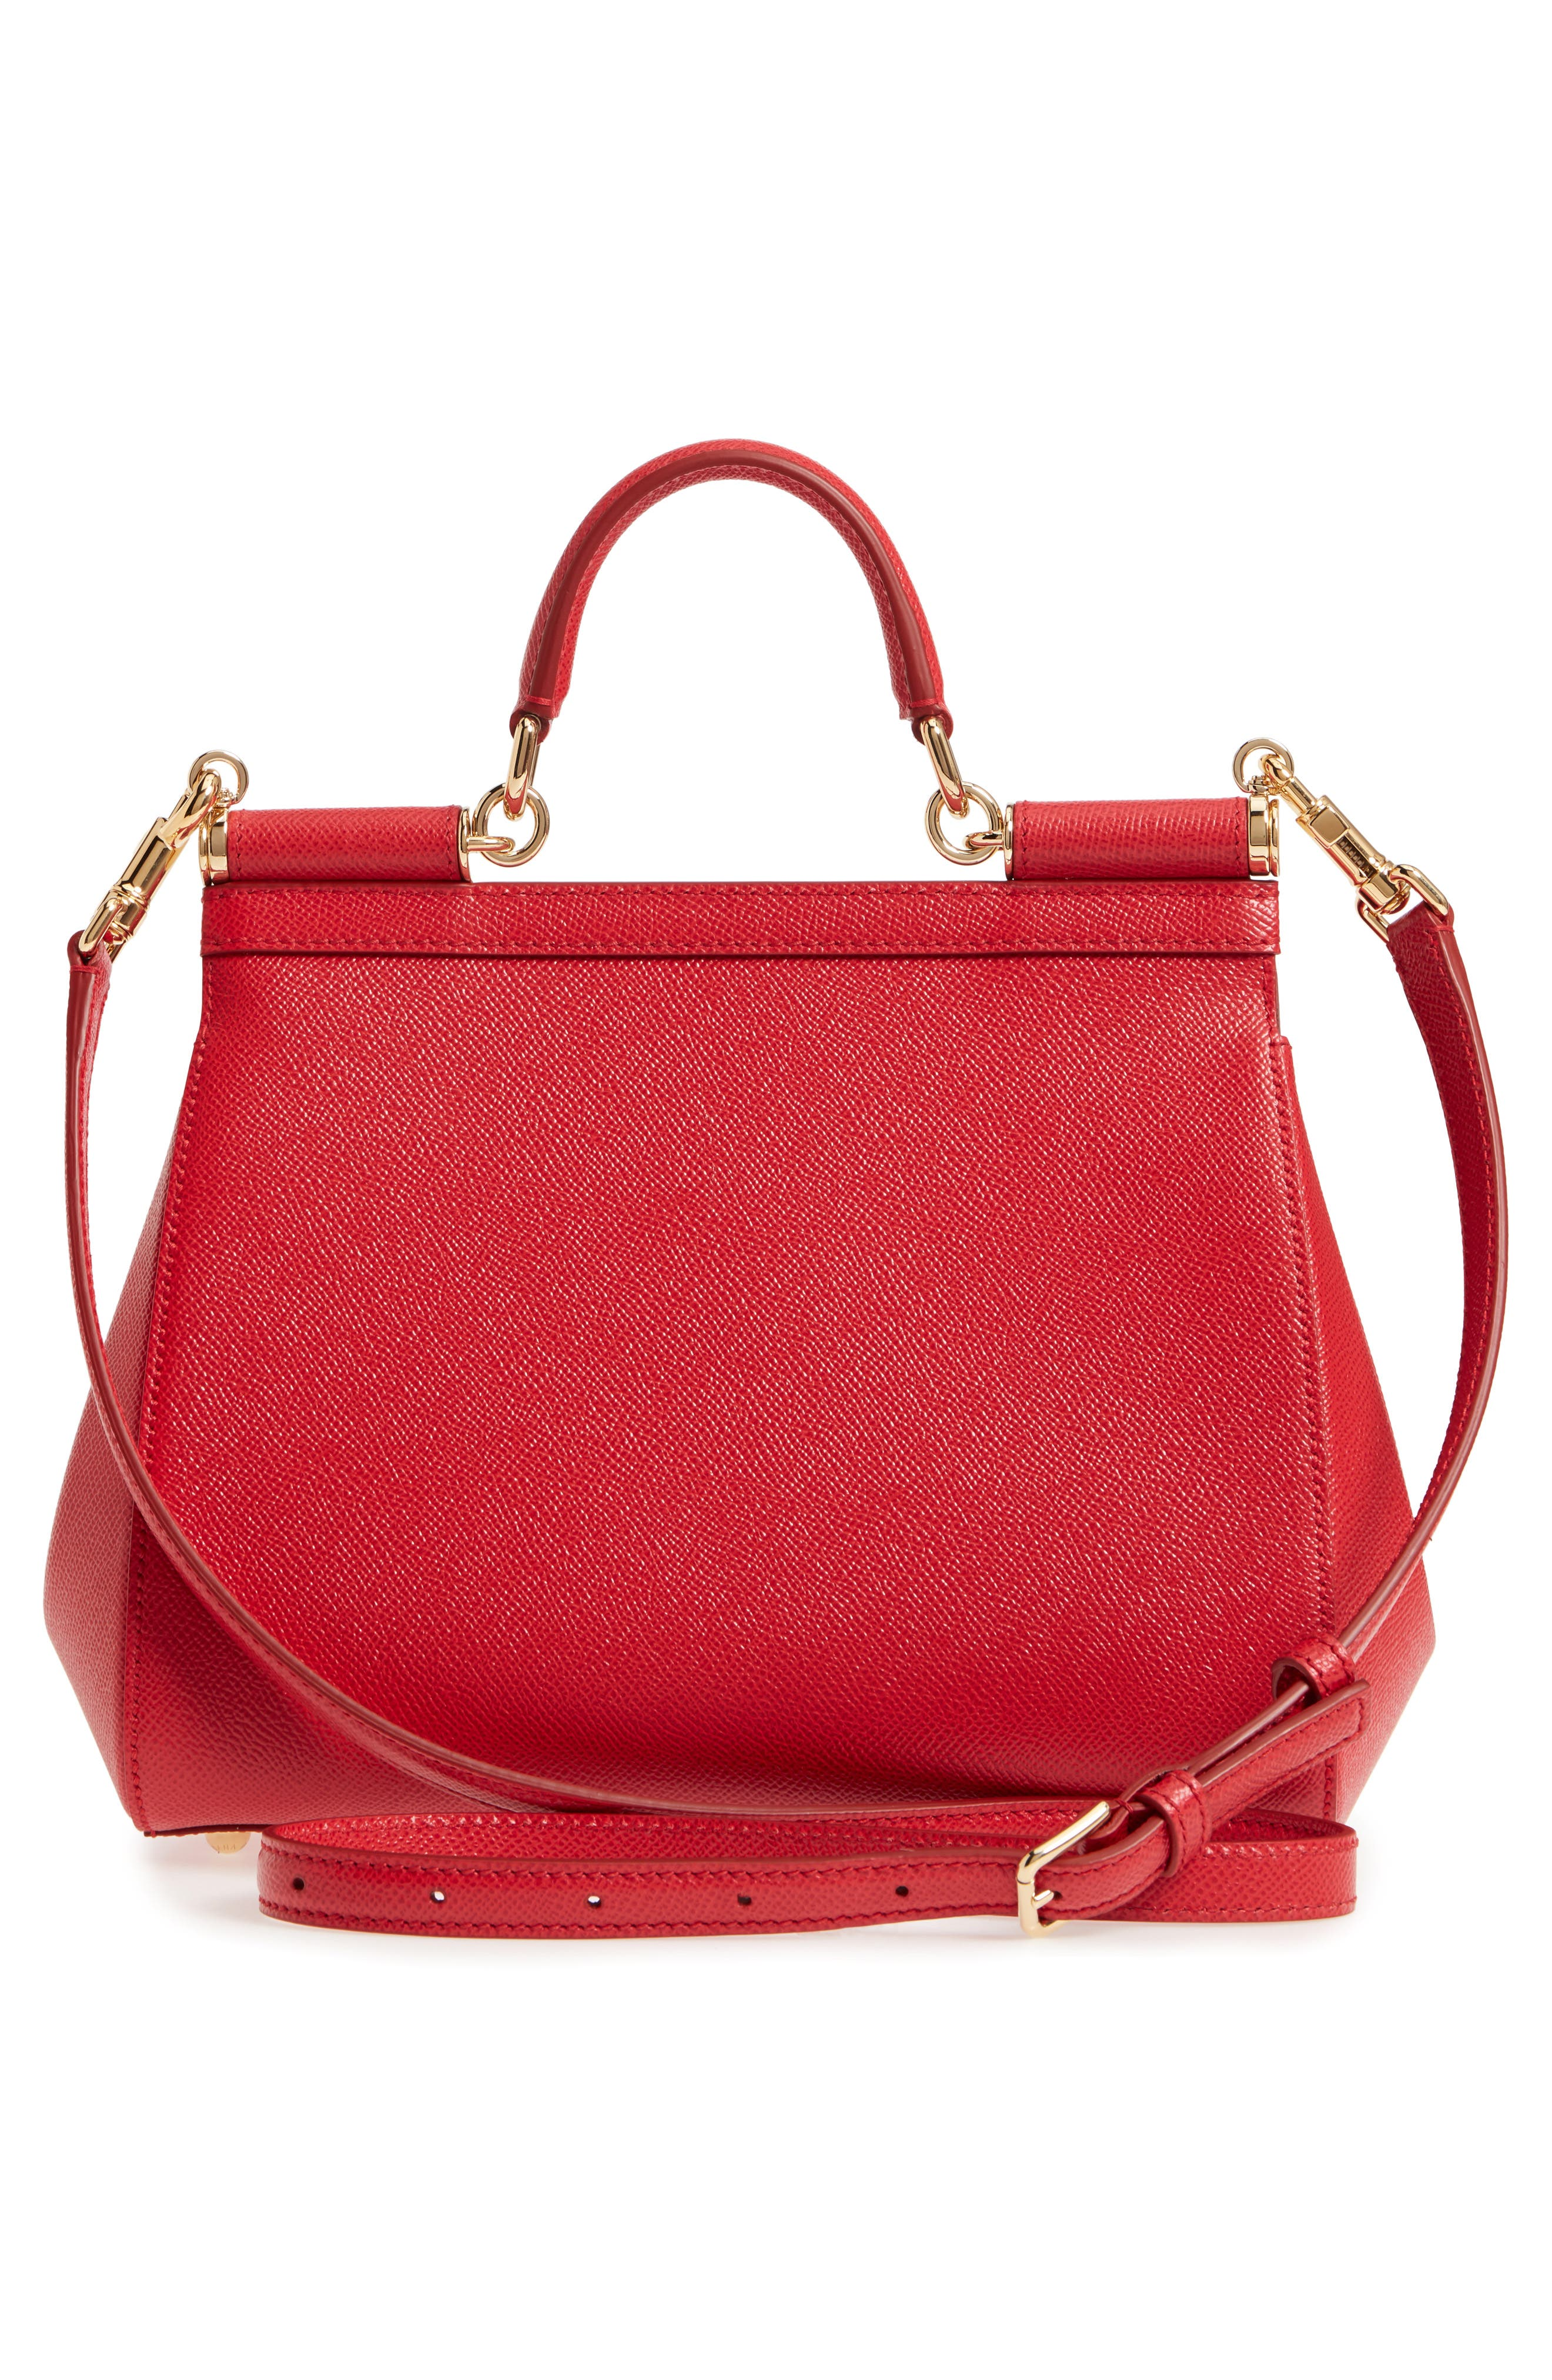 'Small Miss Sicily' Leather Satchel,                             Alternate thumbnail 3, color,                             Red